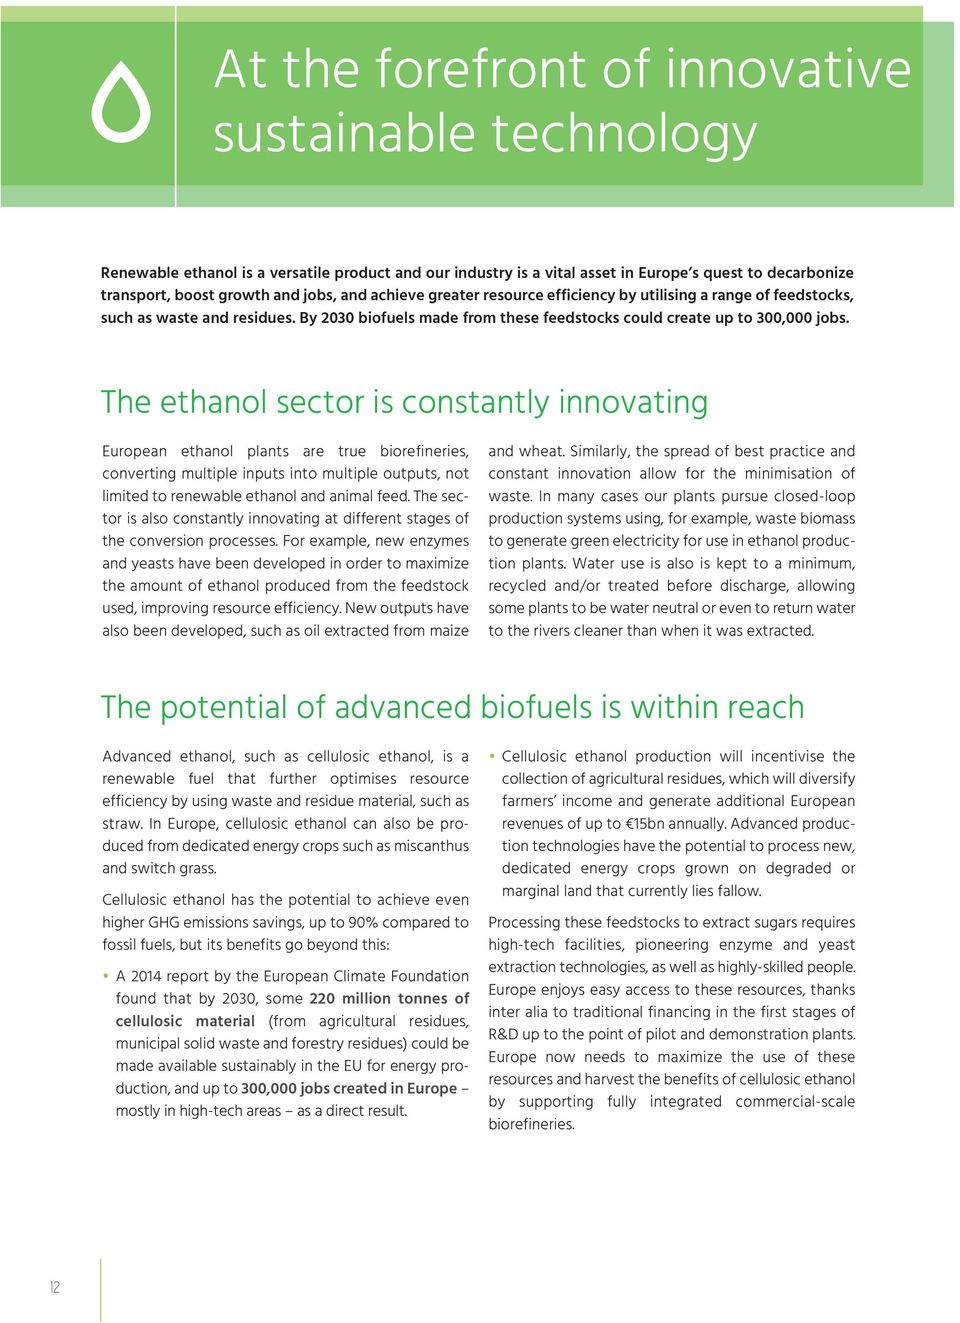 The ethanol sector is constantly innovating European ethanol plants are true biorefineries, converting multiple inputs into multiple outputs, not limited to renewable ethanol and animal feed.